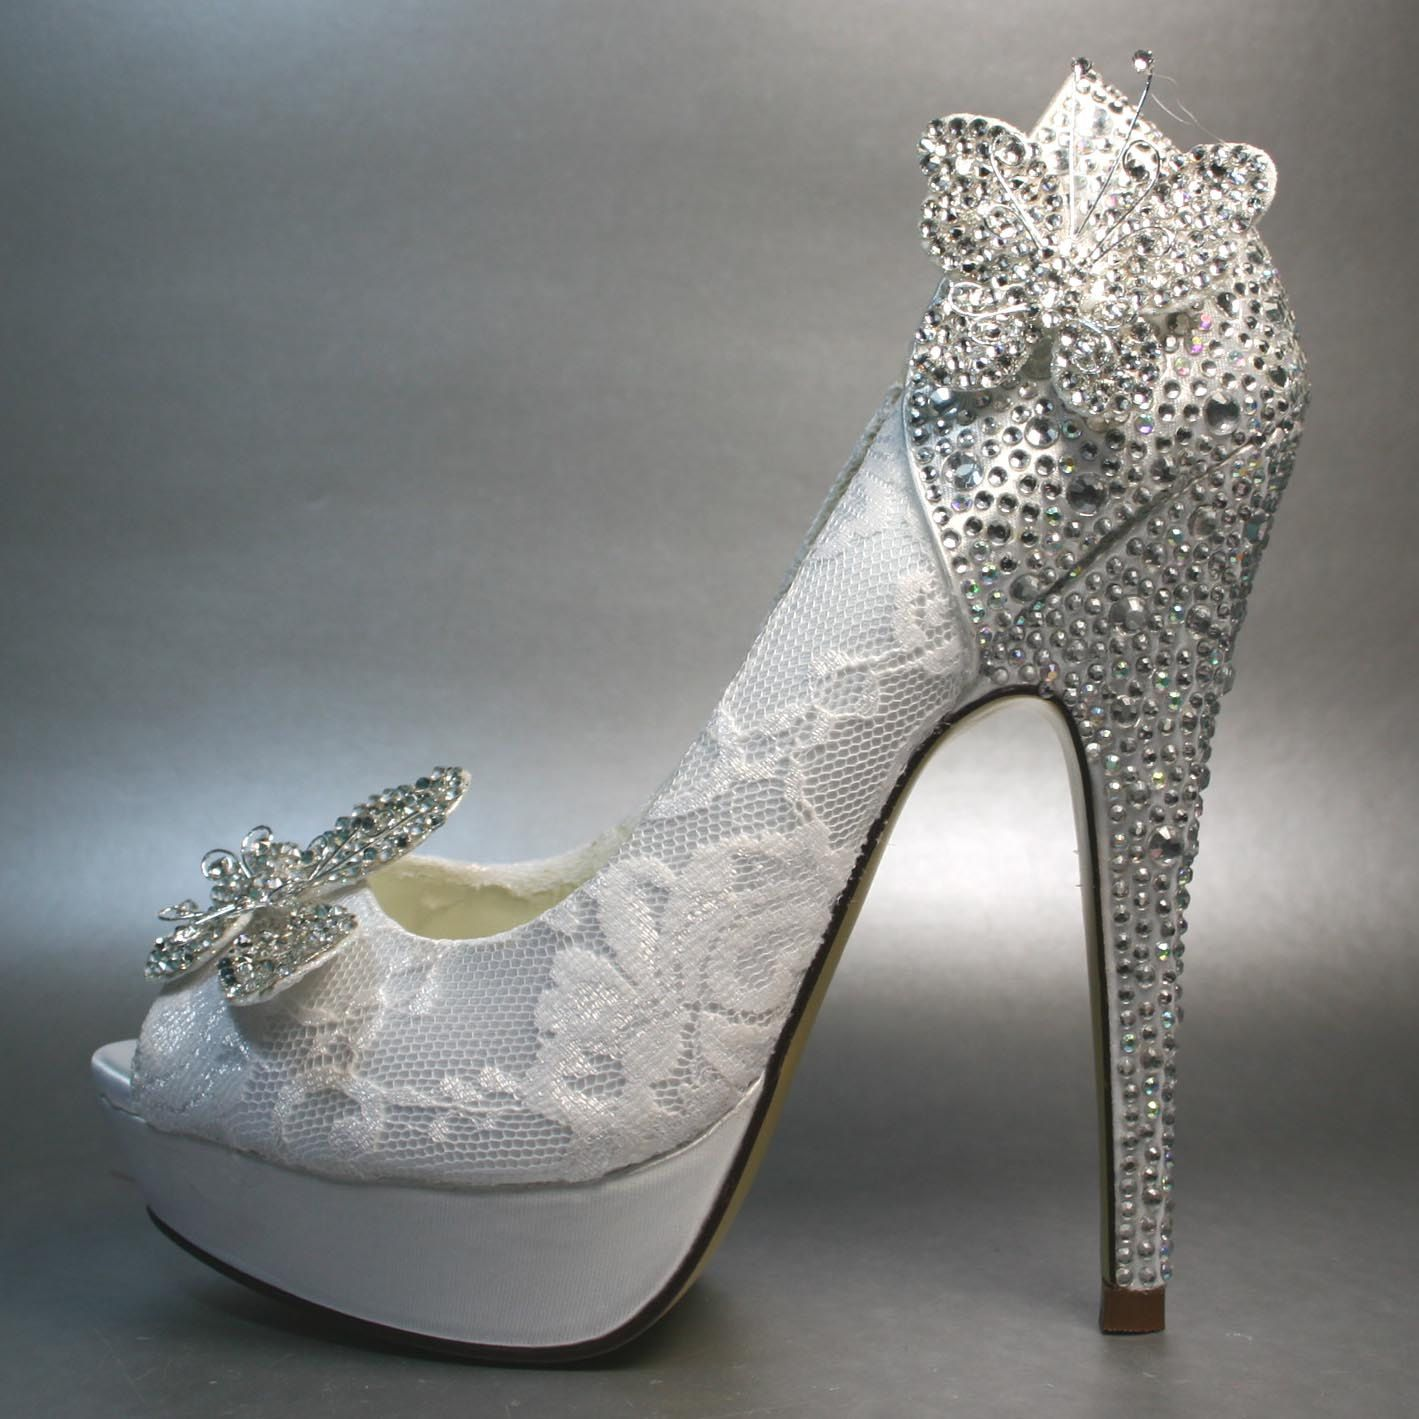 2018 shoes authentic quality lowest price Wedding Shoes -- White Platform Peeptoe with Silver Crystals on ...